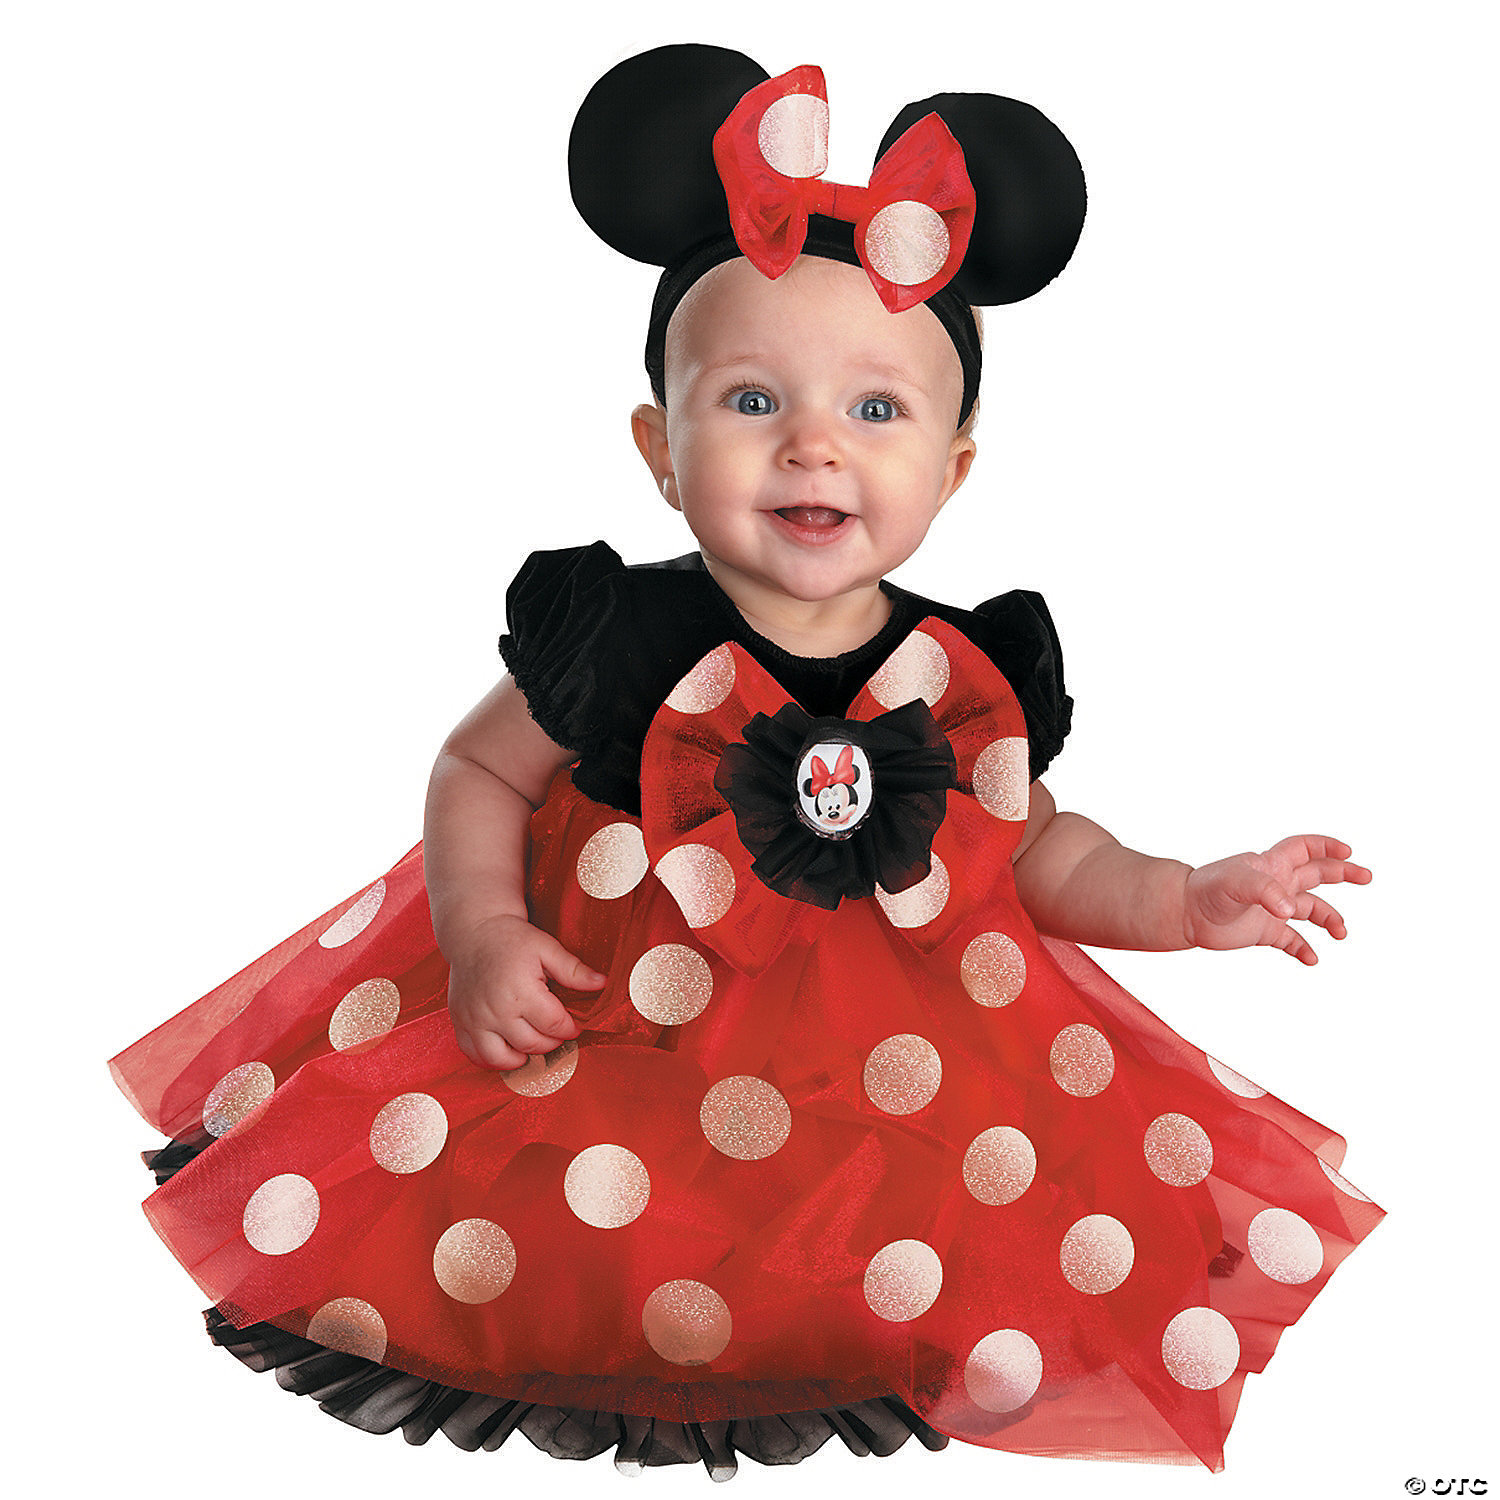 Toddlers Minnie Mouse Dress Minnie Mouse Kids Free Shipping Baby Girl Minnie Mouse Dress Minnie Mouse Costume Girls Minnie Mouse Dress